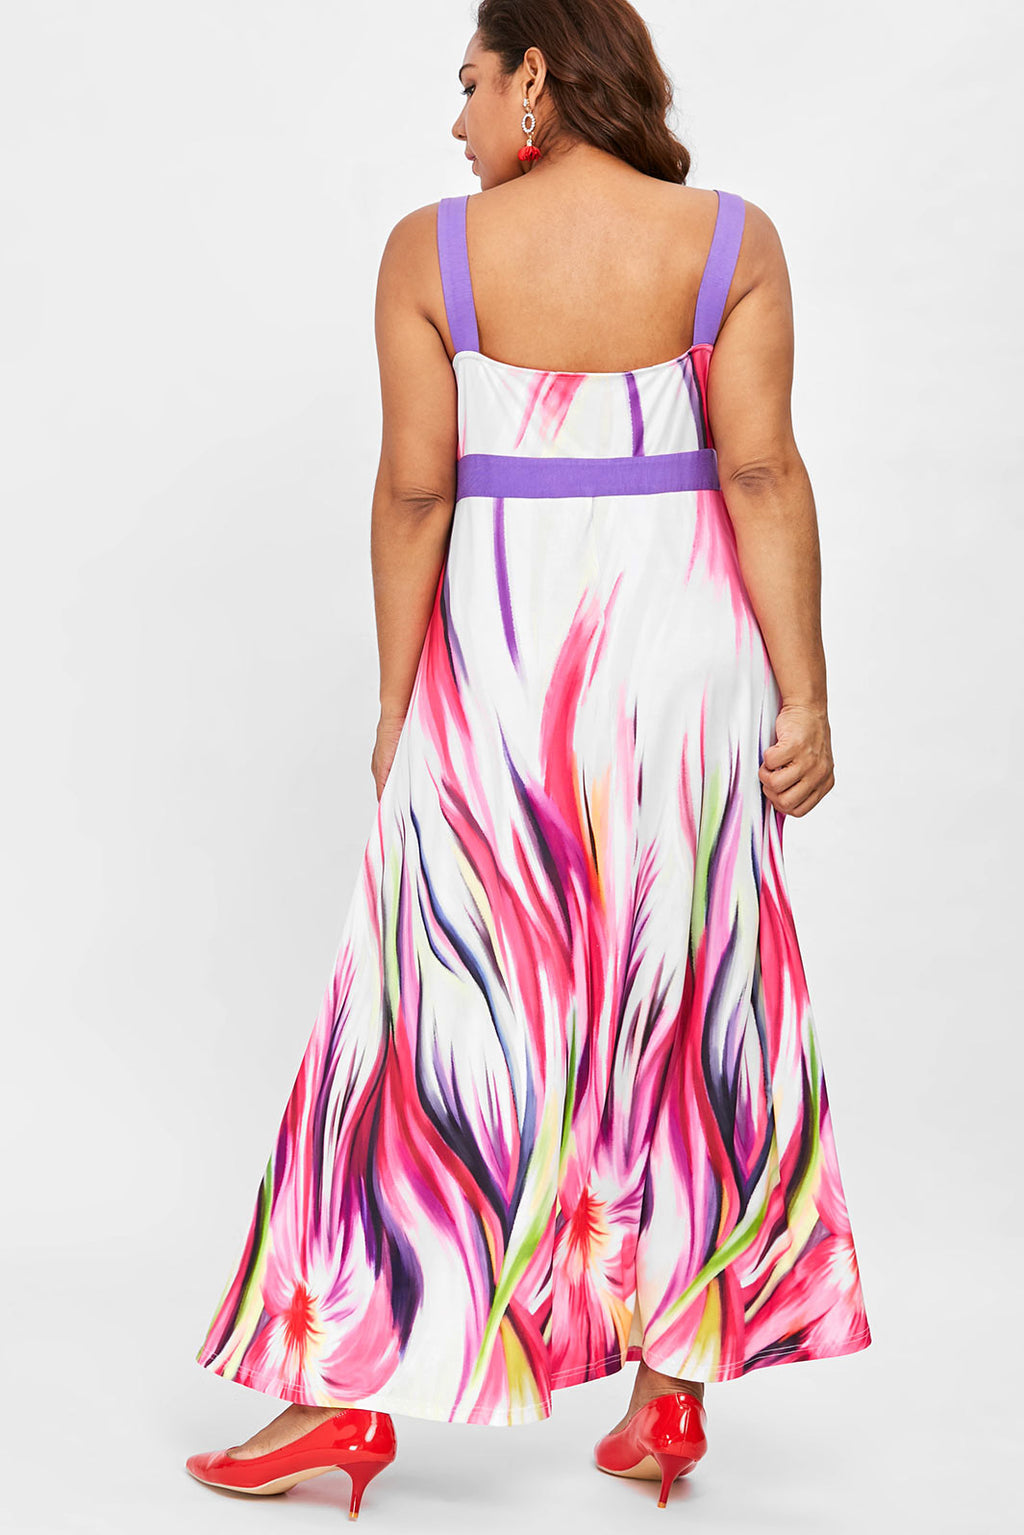 Plus Size Vibrant Colorful Plunging Neck Sleeveless Maxi Dress